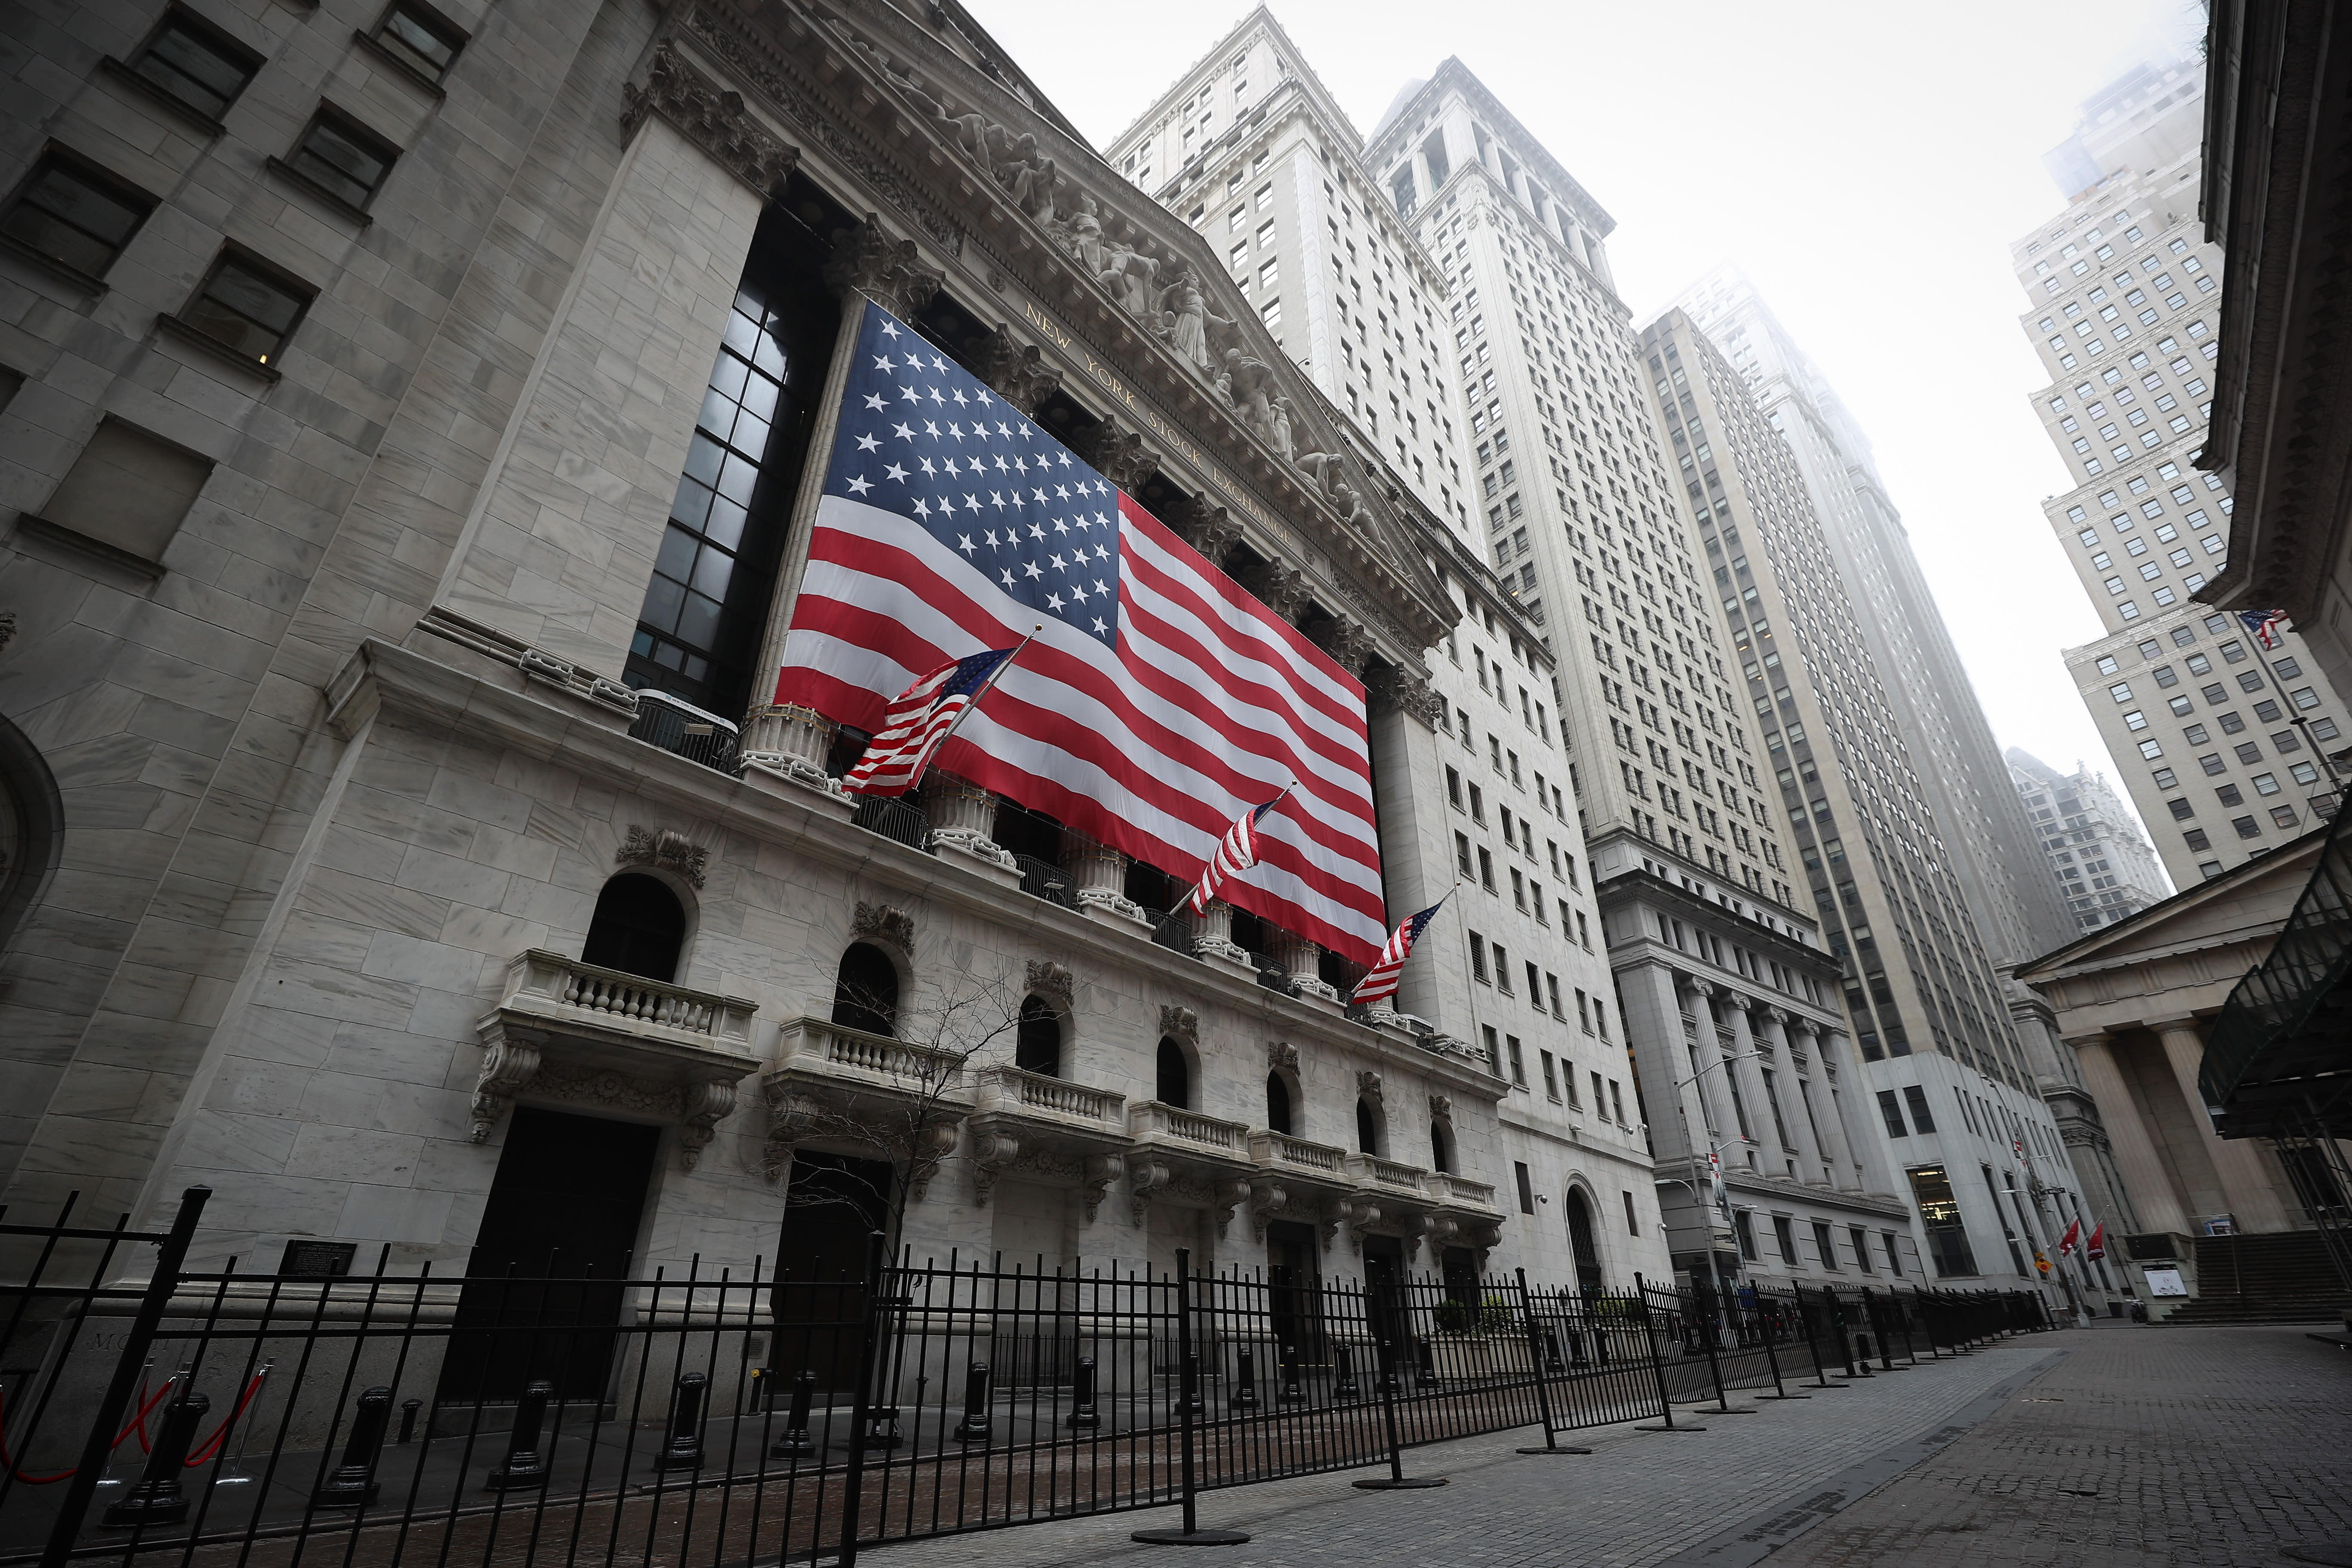 Stock market live updates: Dow falls 100, second wave fears